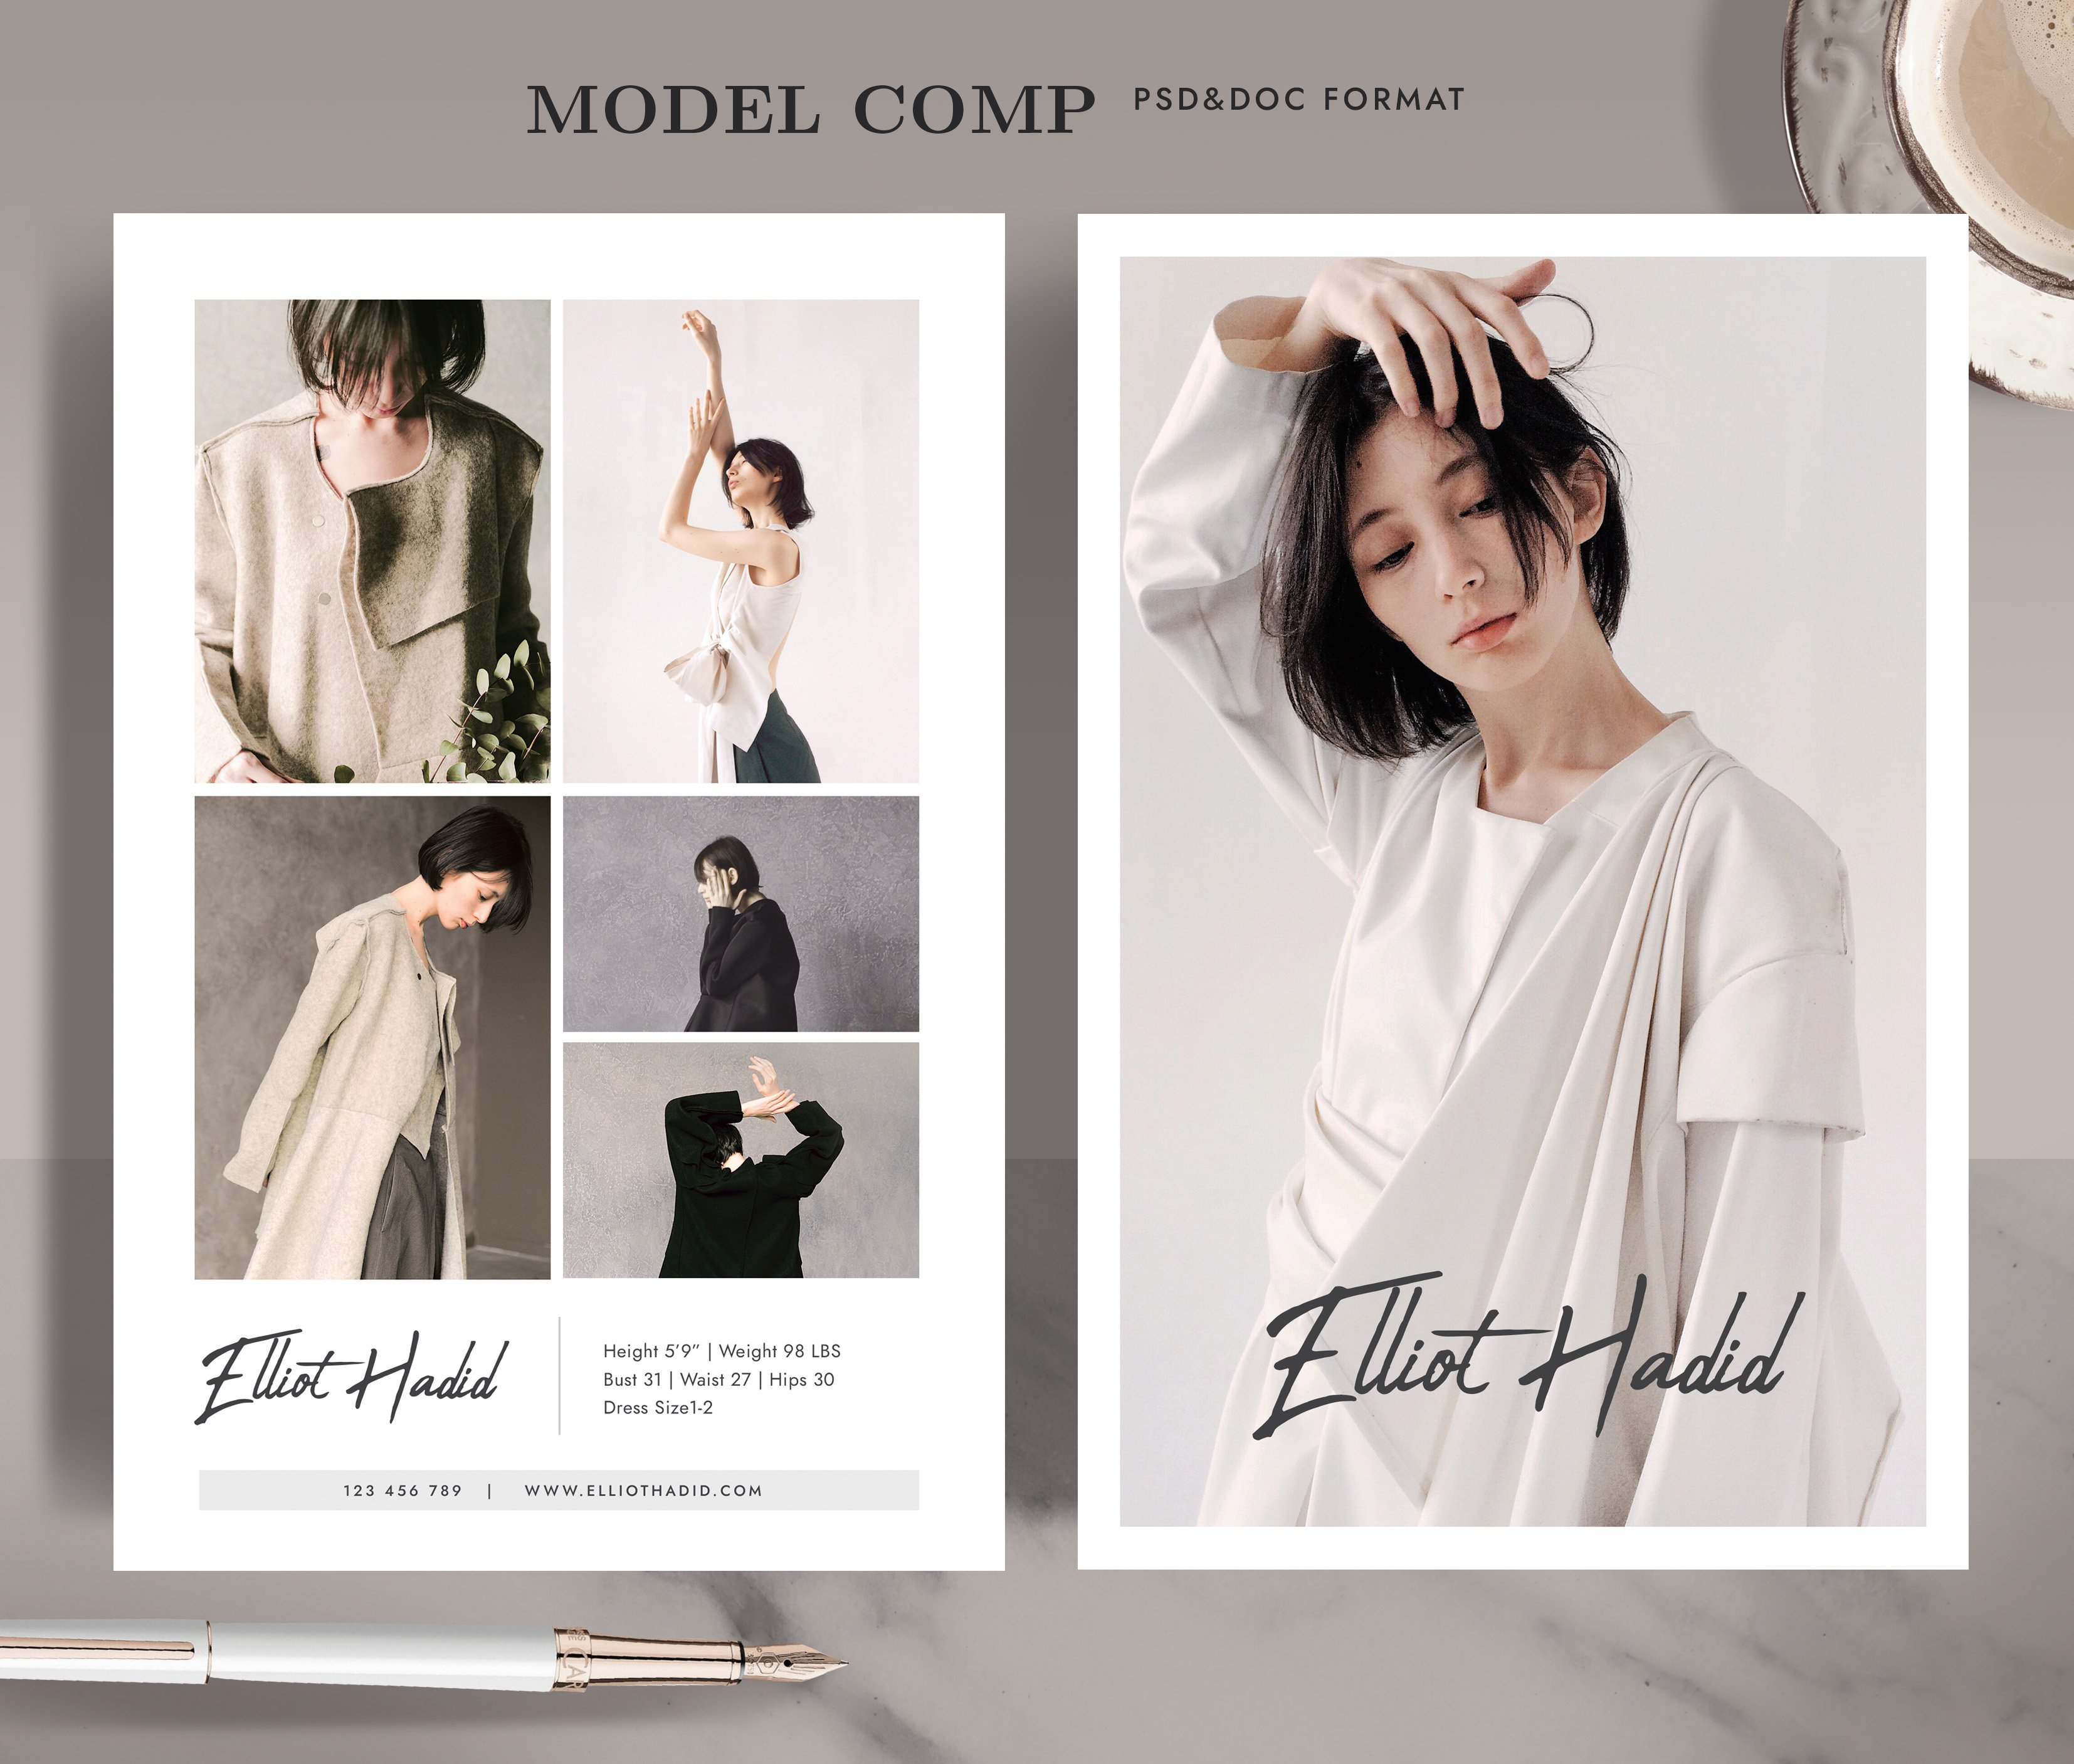 Modeling Comp Card Template MC21 Pertaining To Comp Card Template Psd